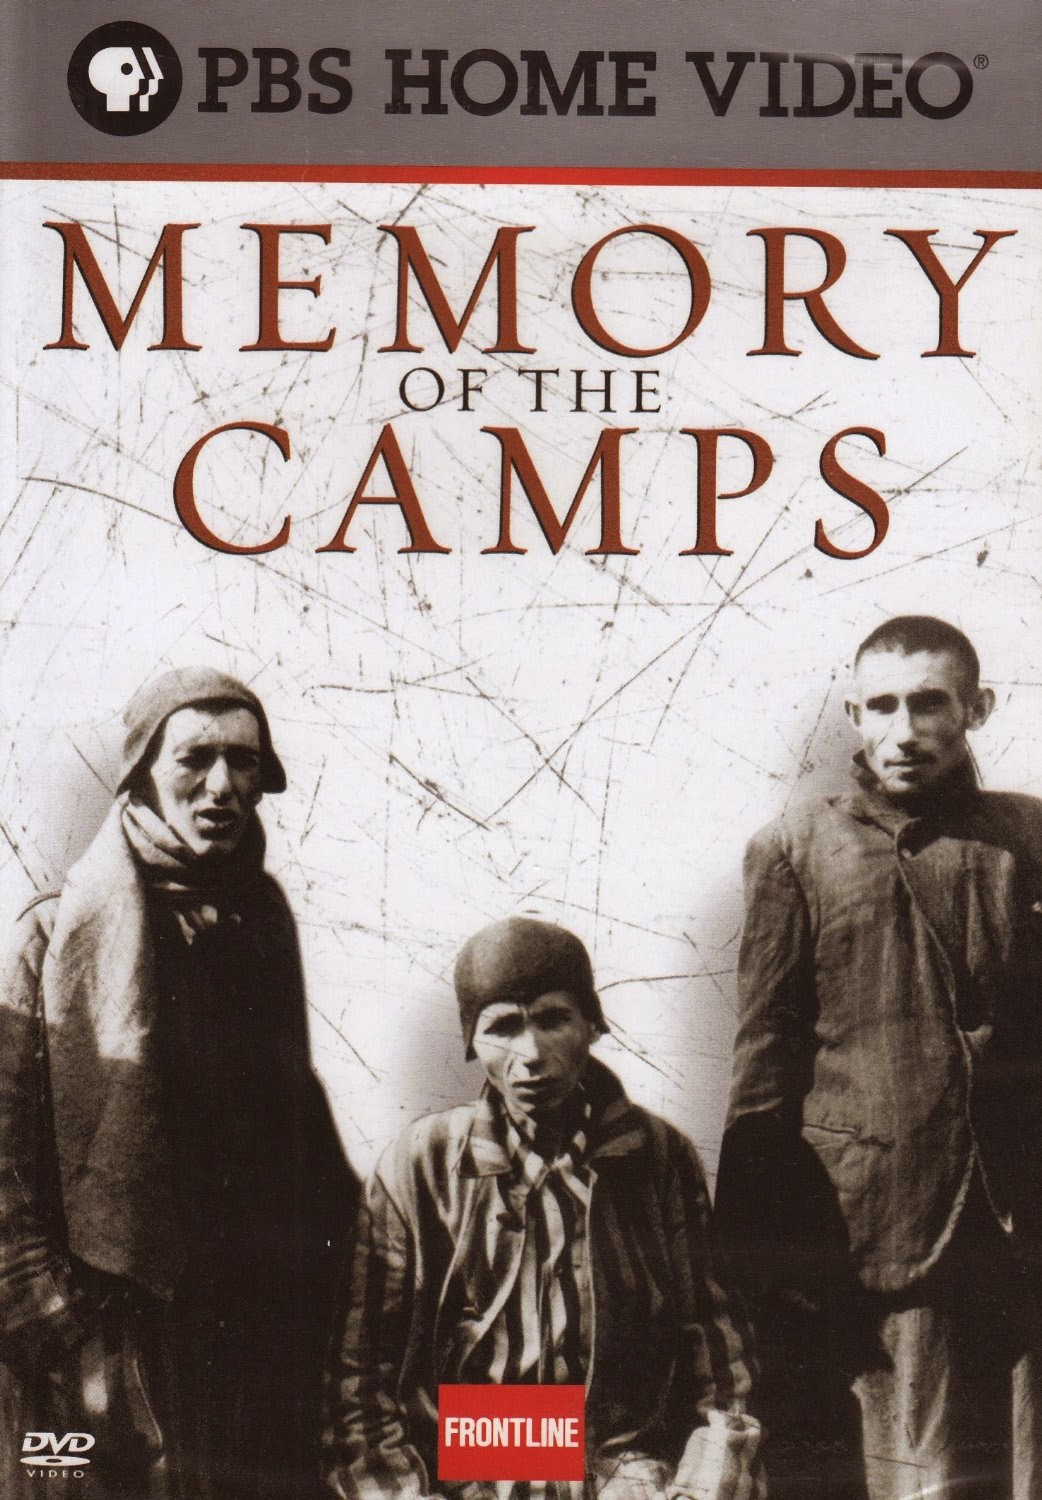 memories of the camps essay Concentration camps in nazi germany: the new histories [nikolaus wachsmann, jane caplan] on amazoncom free shipping on qualifying offers the notorious concentration camp system was a central pillar of the third reich, supporting the nazi war against political history background.